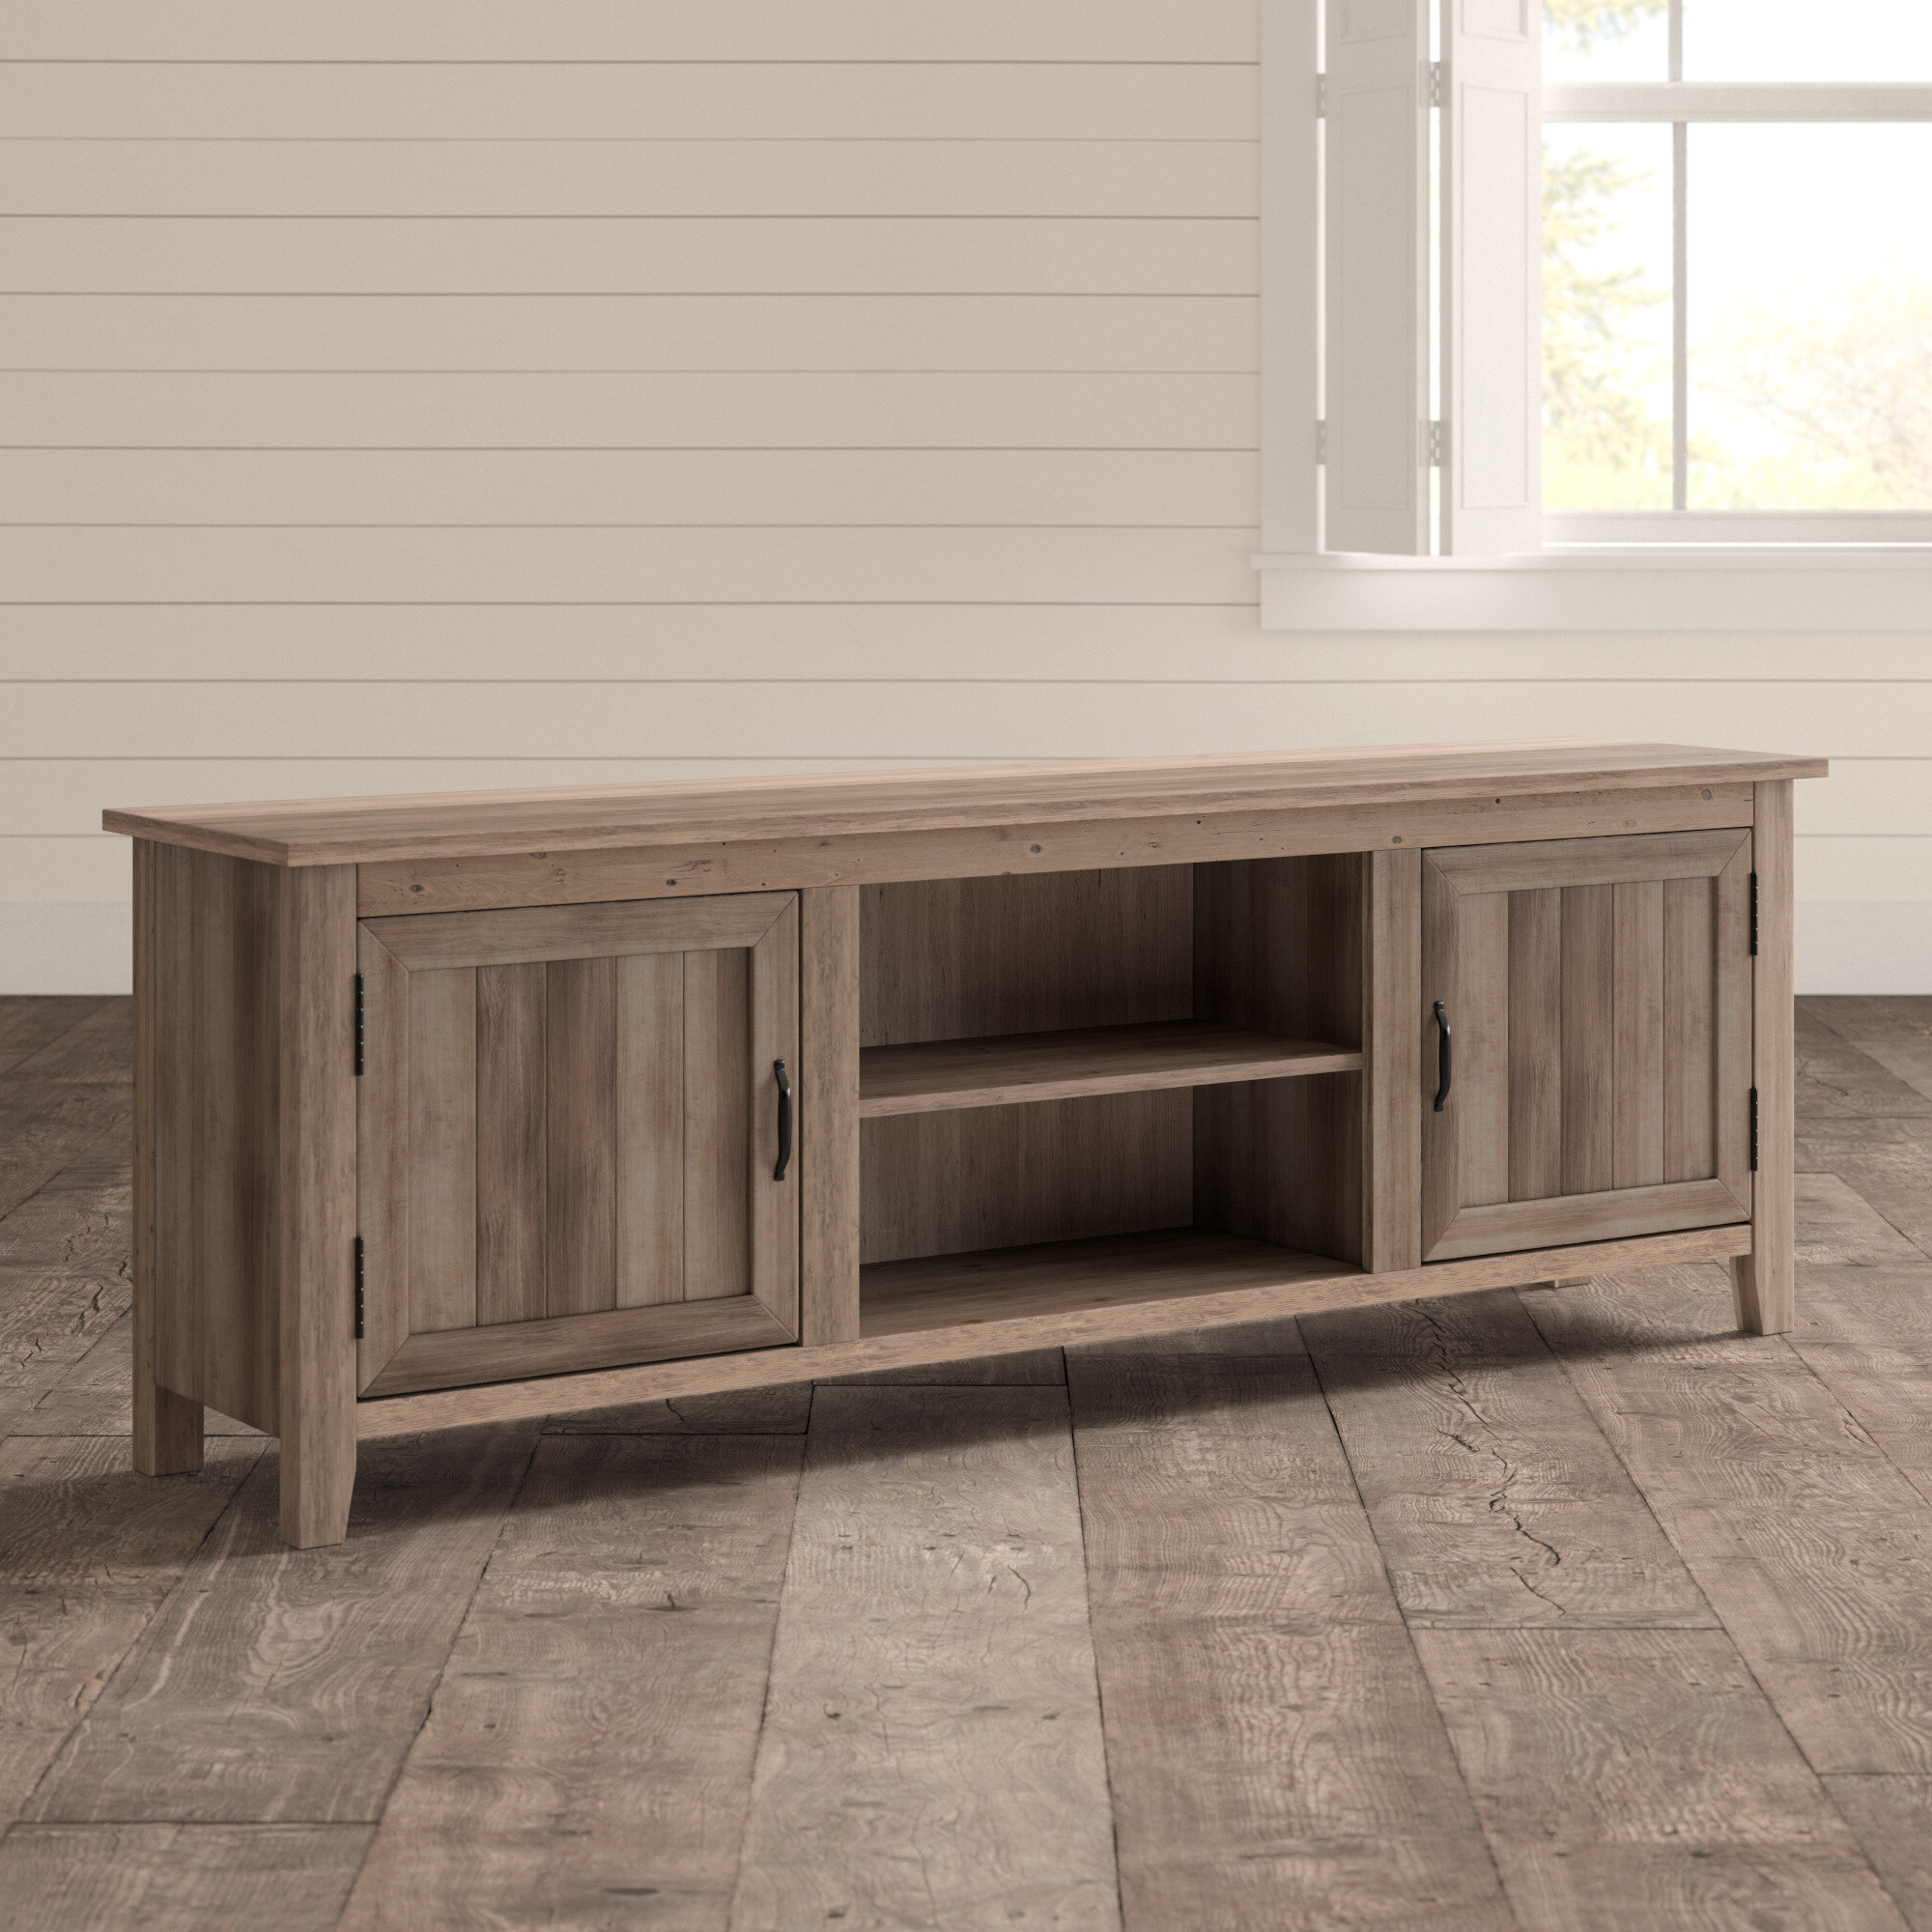 Gracie Oaks | Birch Lane Intended For Jessenia Sideboards (View 17 of 20)